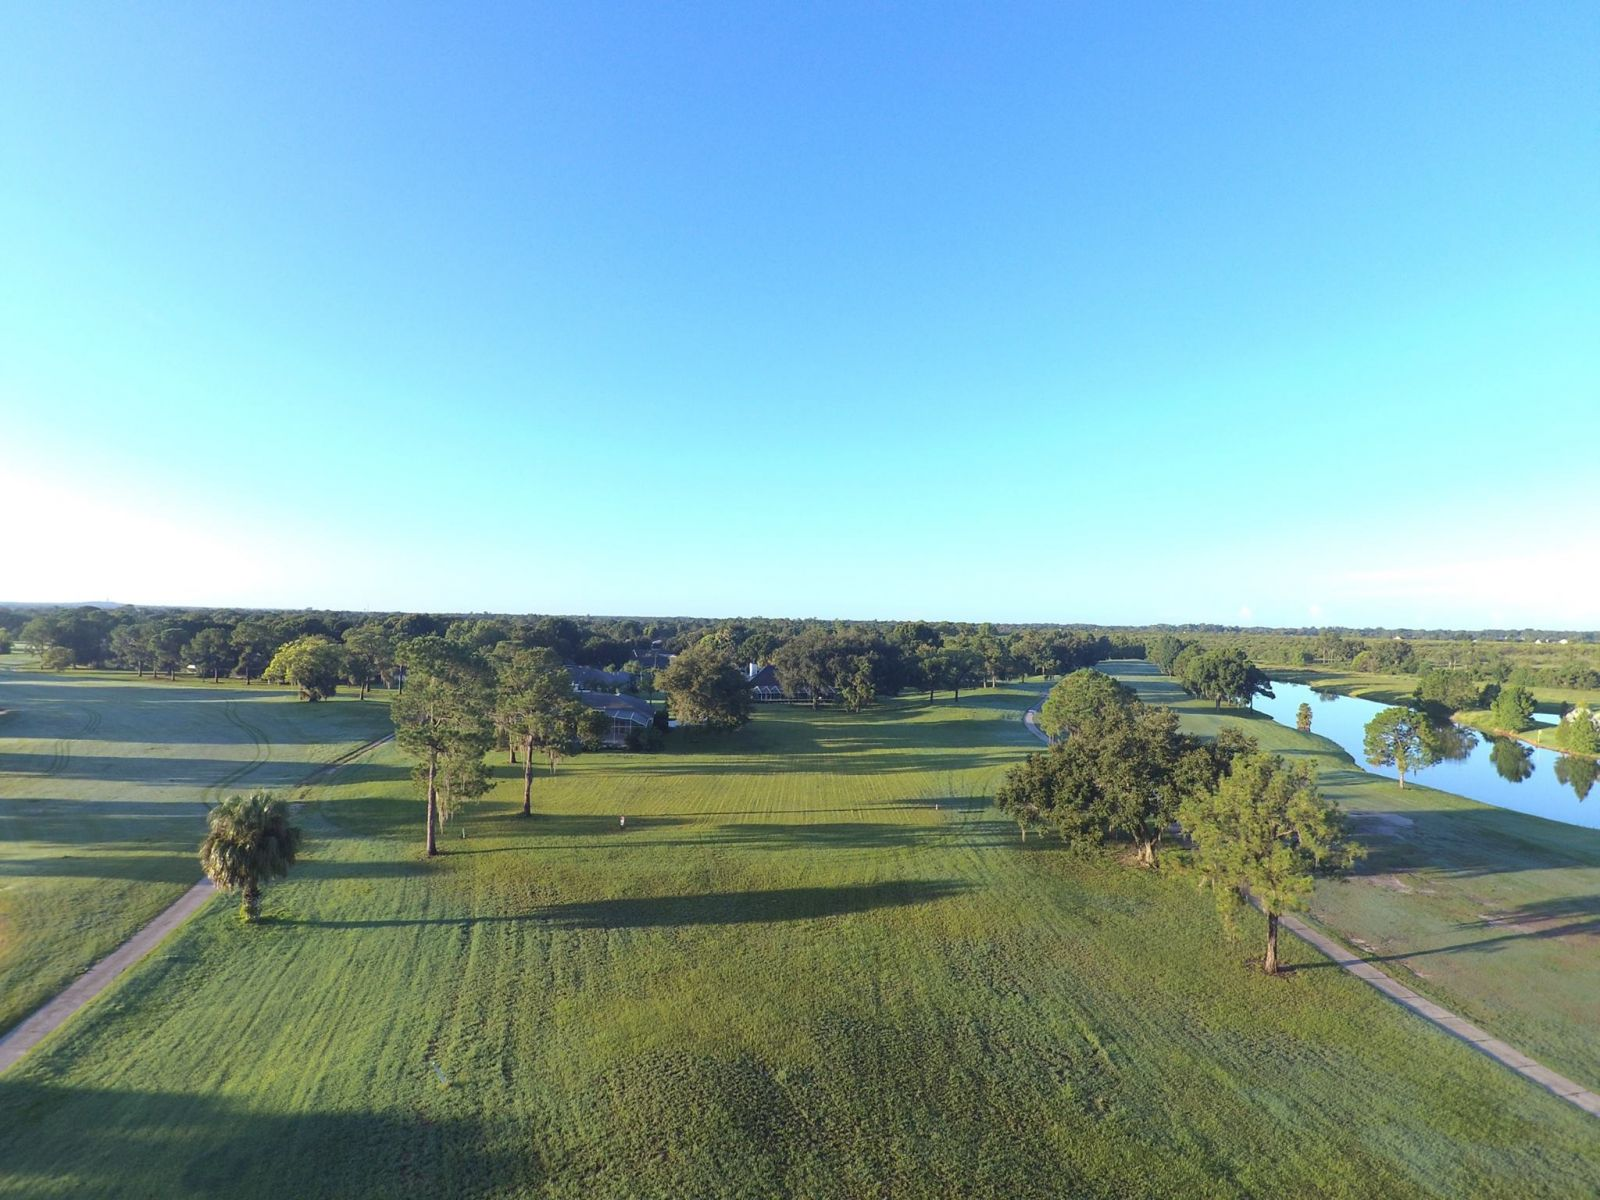 View from drone of the golf course at cypresswood